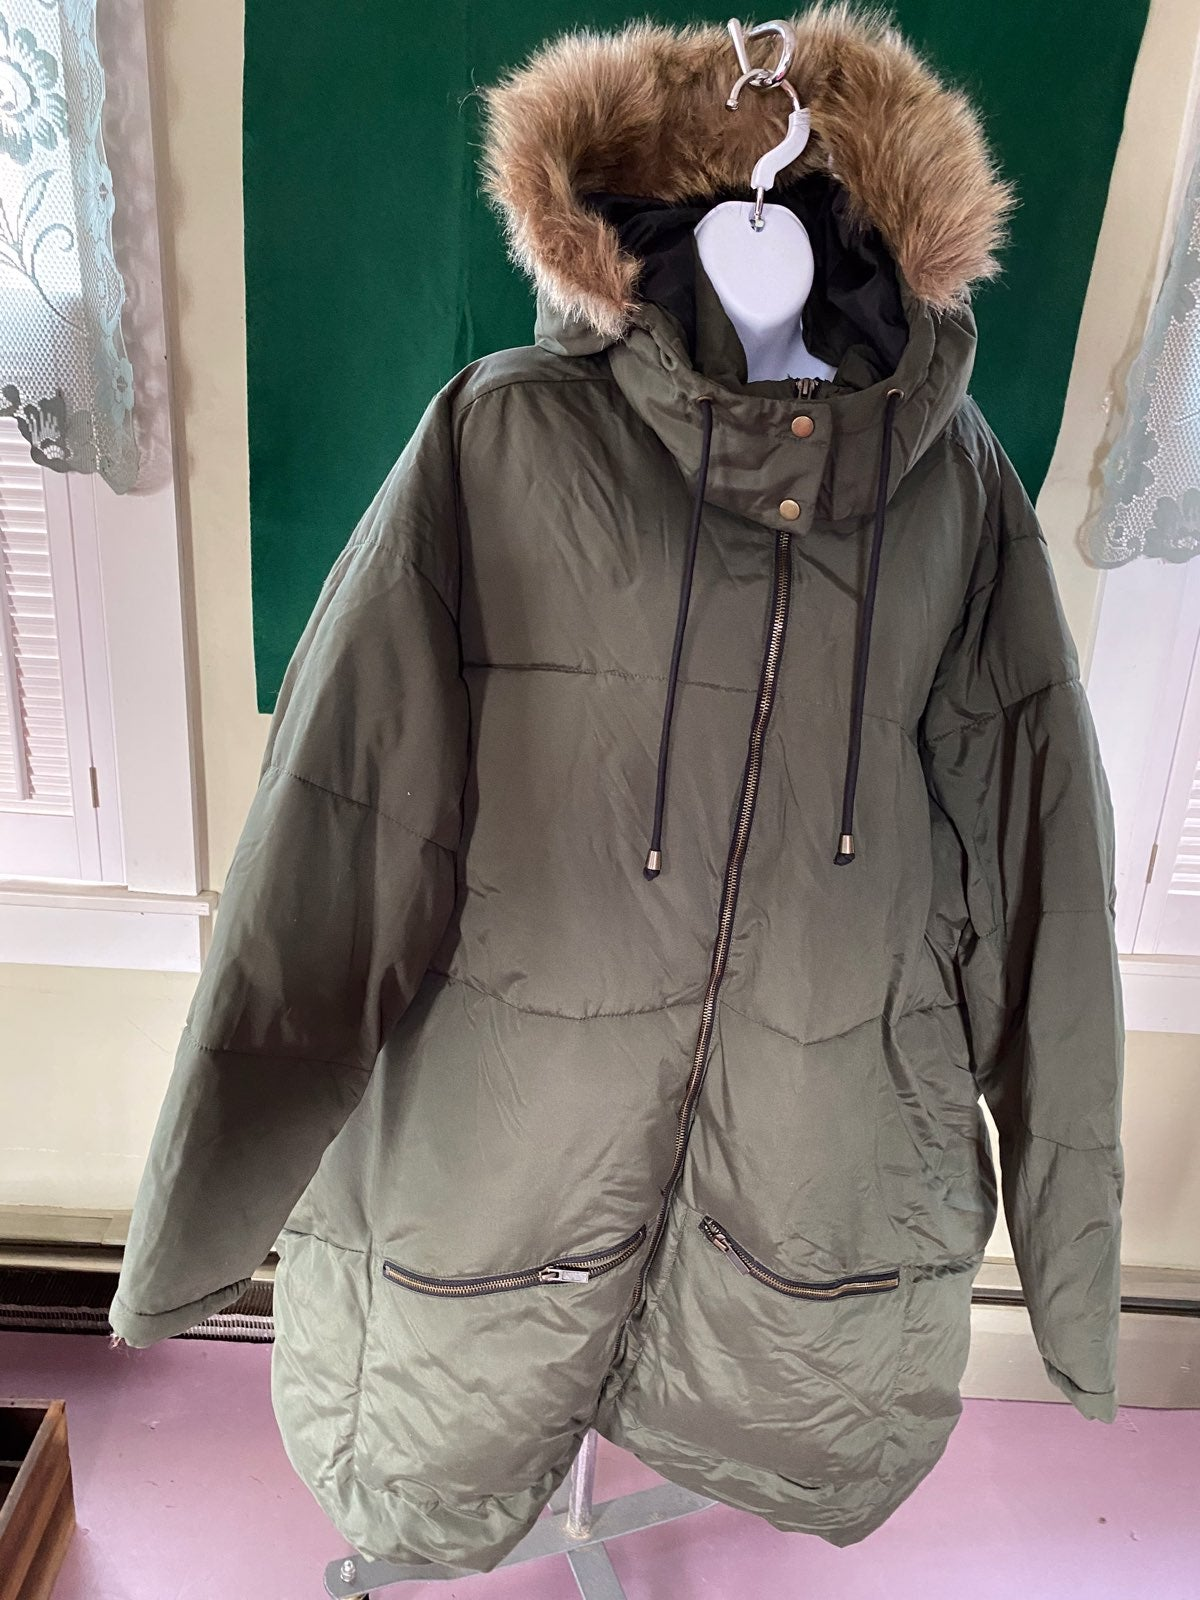 Old Navy Woman's Hooded Coat 4X Plus NWT